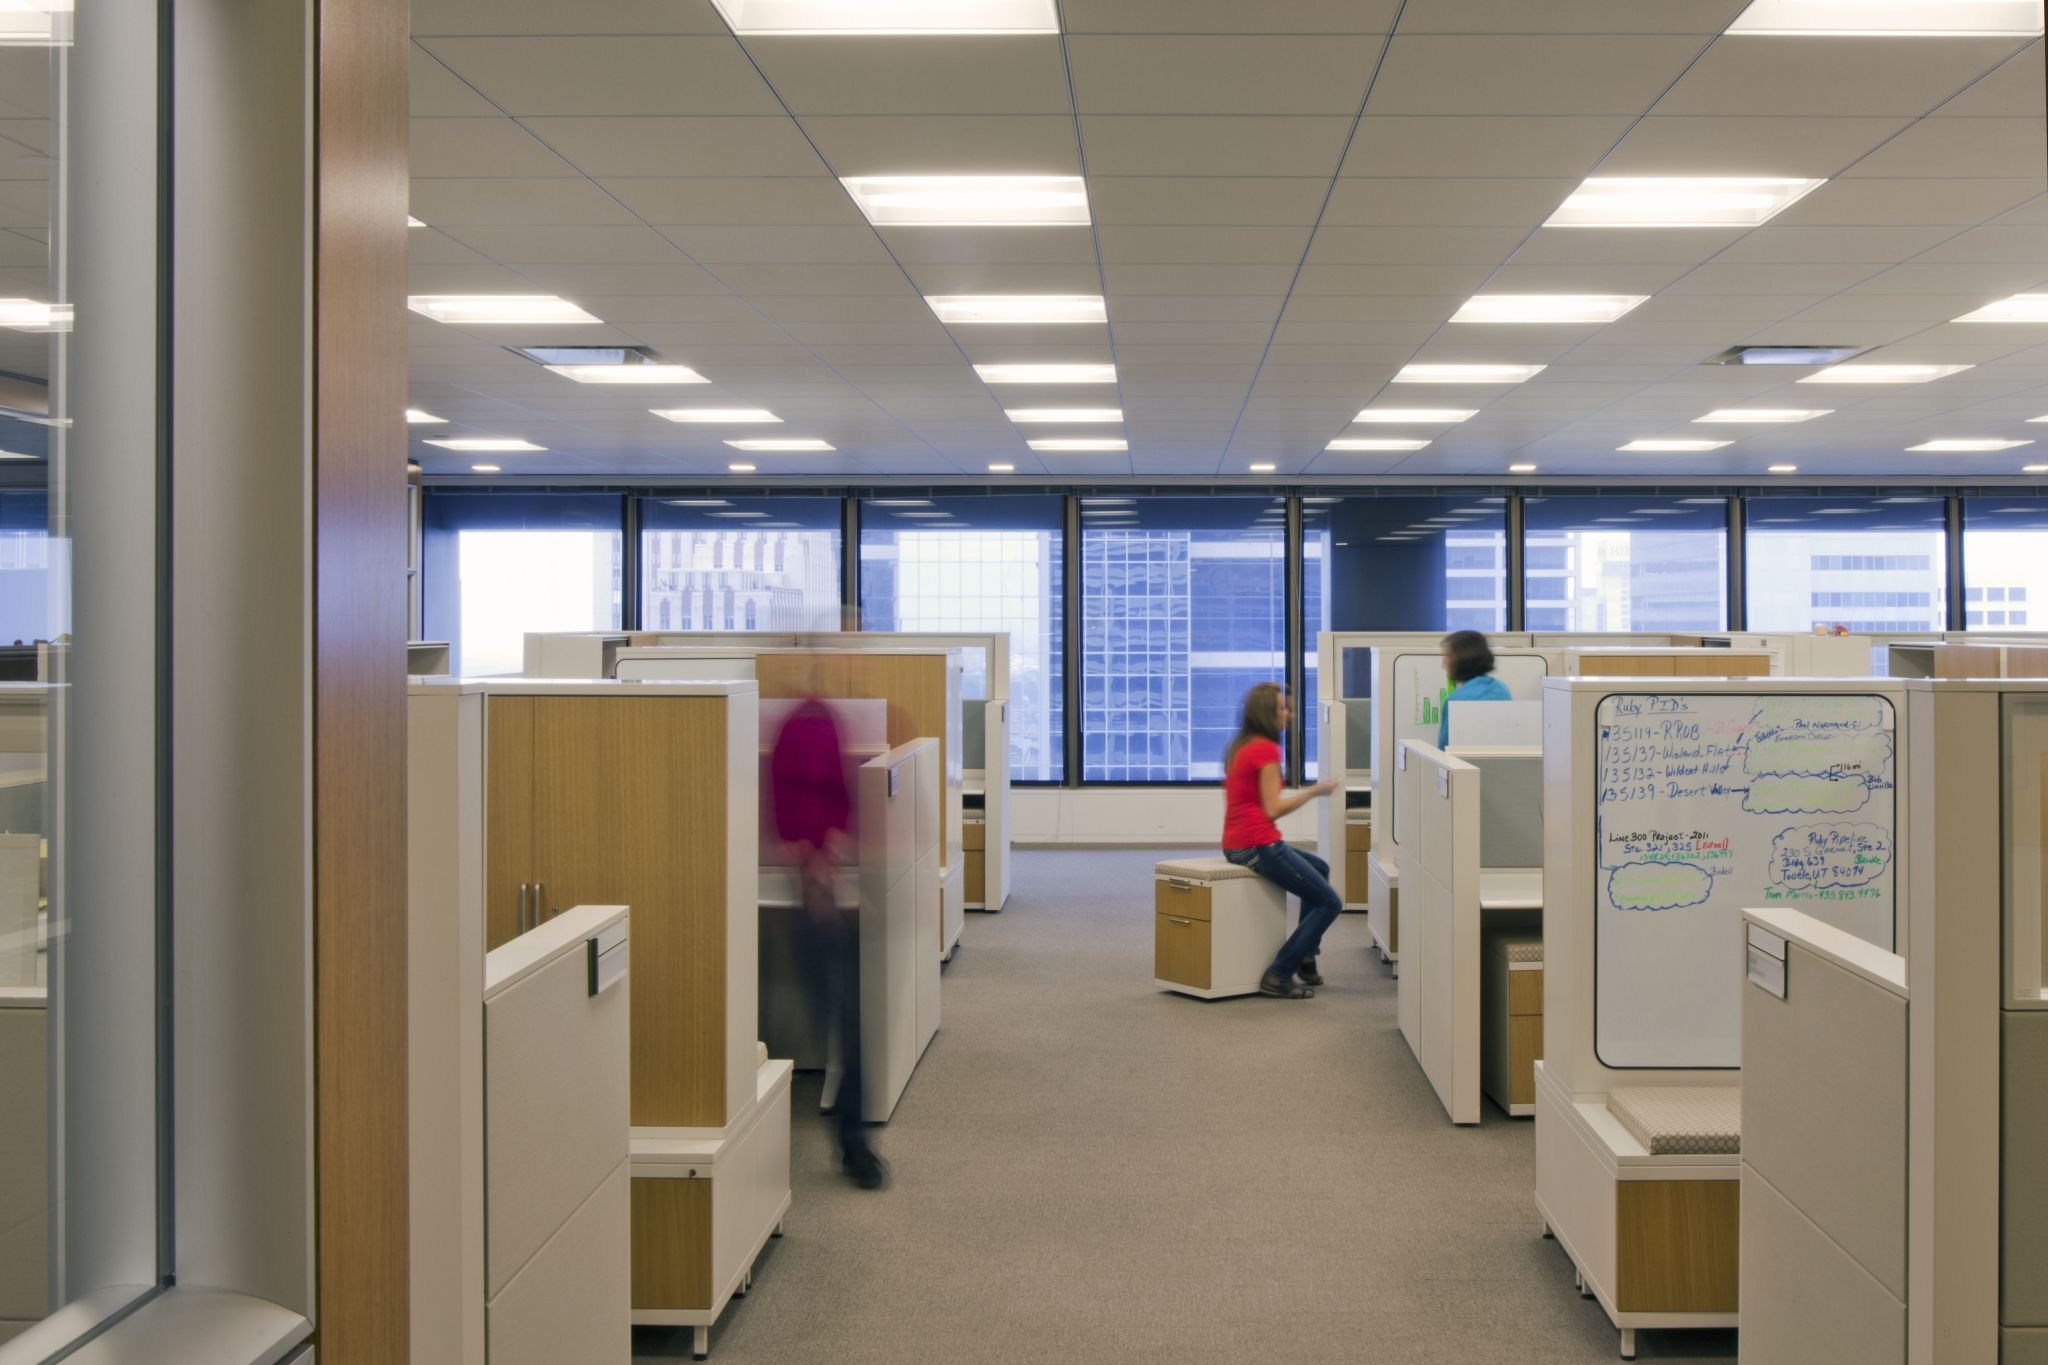 In offi ce spaces without adequate insulation, it is not uncommon for productivity to drop when employees can hear nearby conversations.